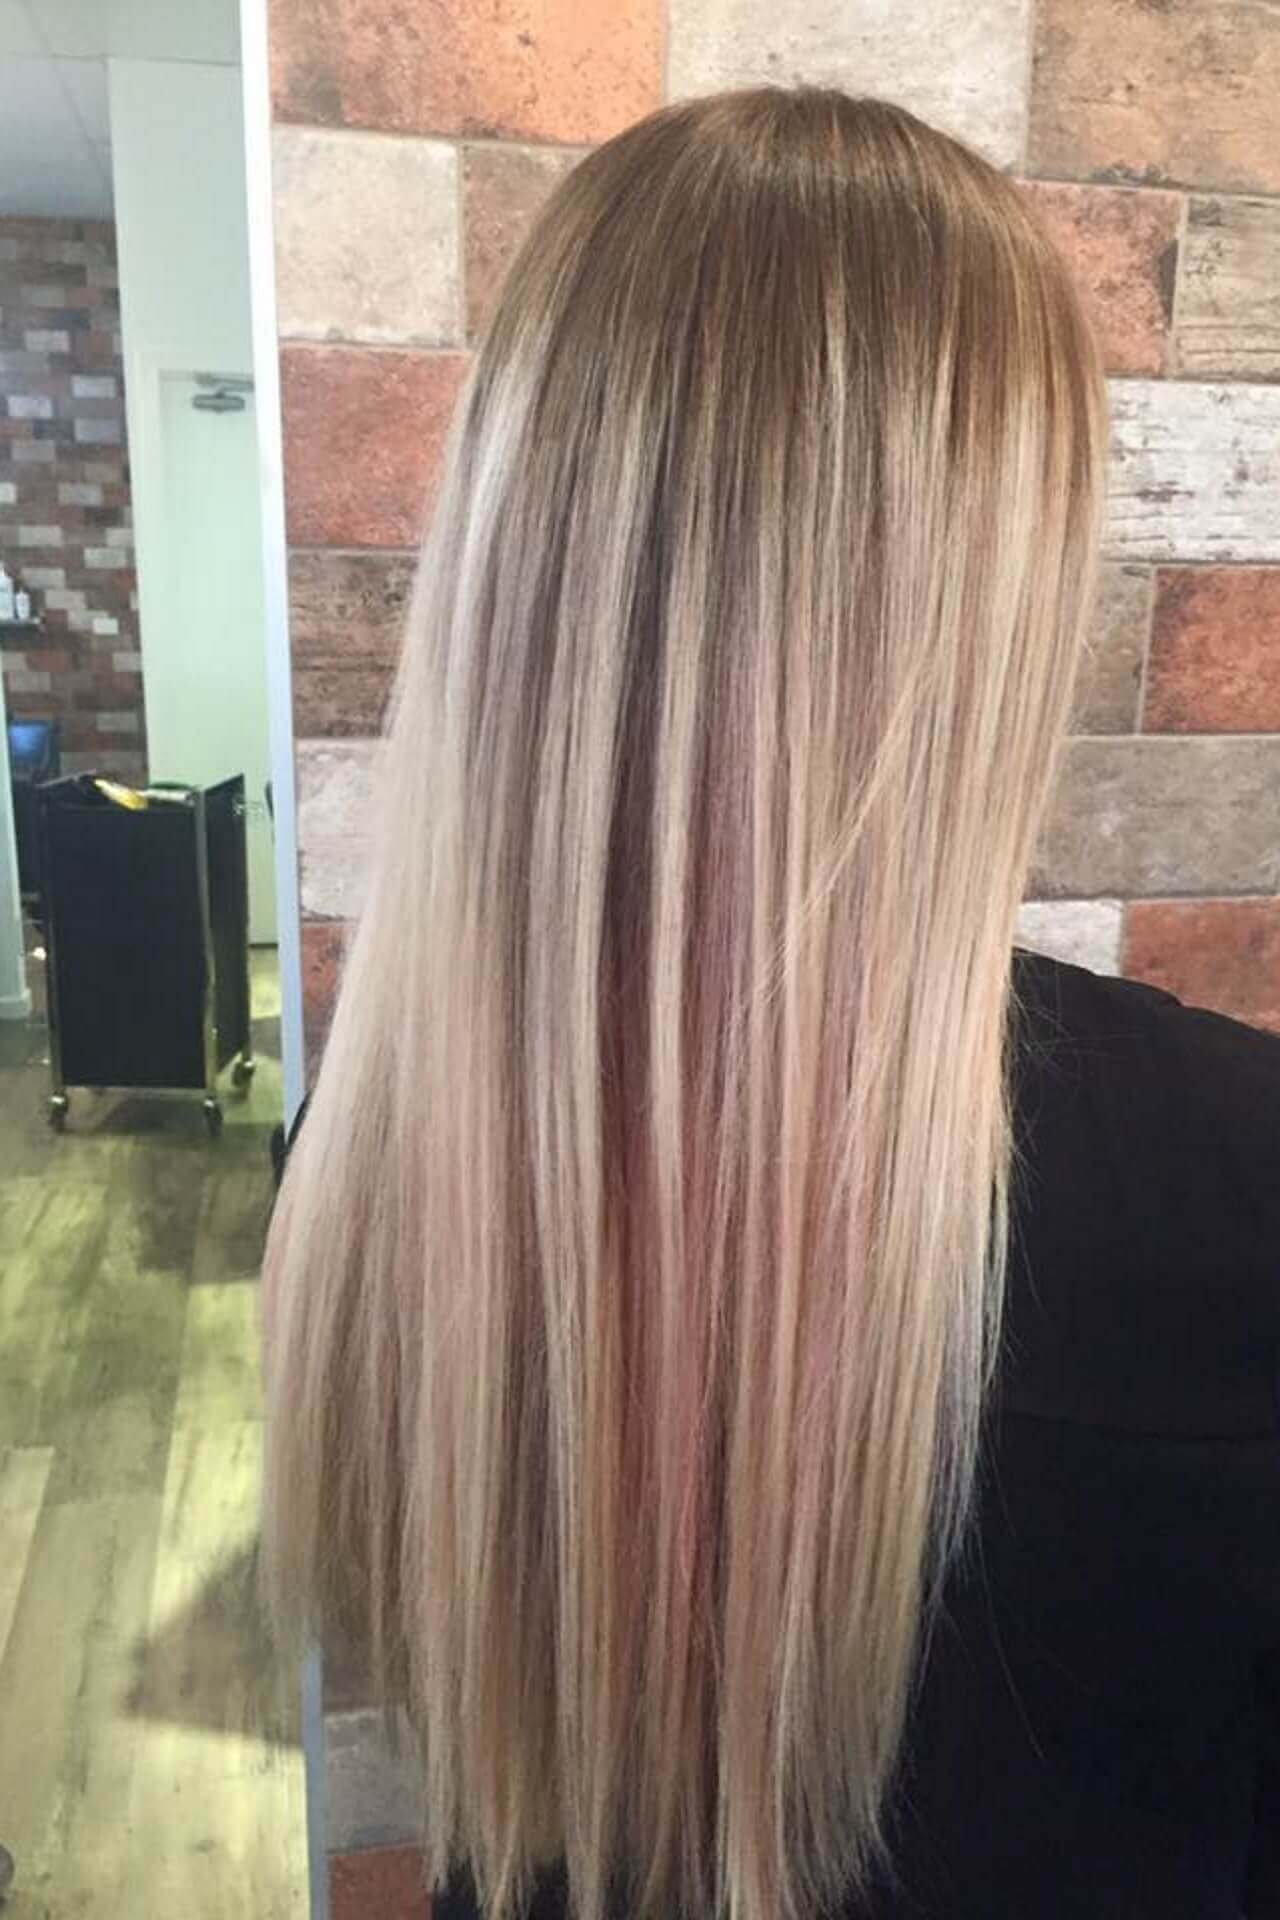 Samantha Jones Hair Co Our Work Image Gallery - Long Blonde Straight Hair